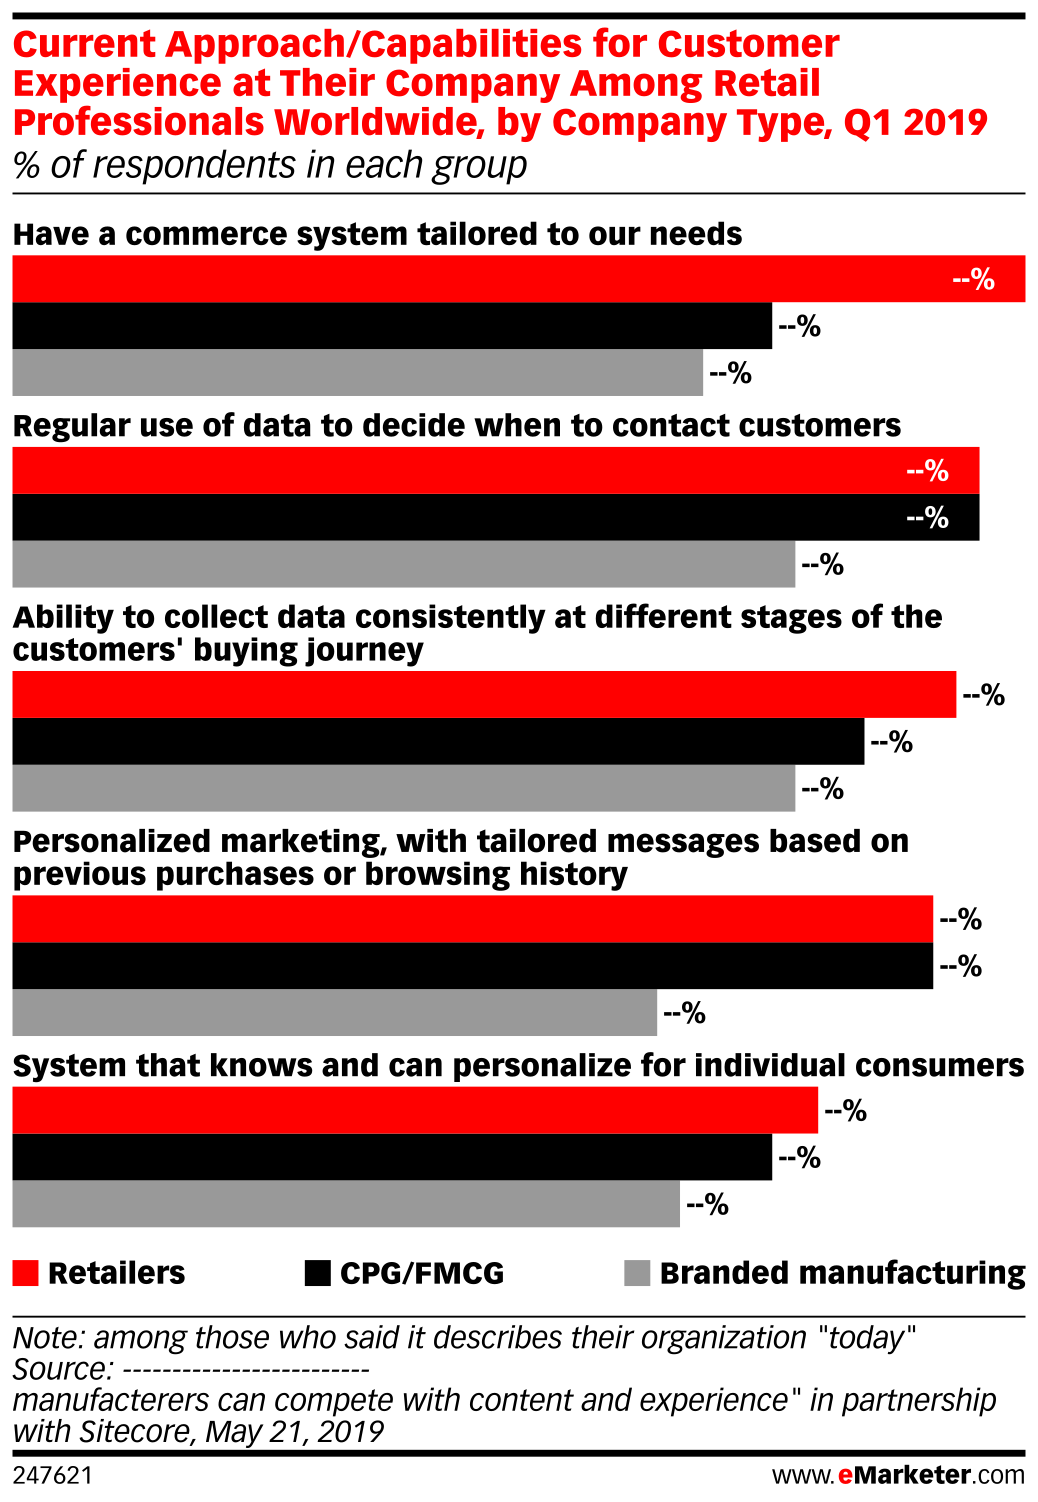 Current Approach/Capabilities for Customer Experience at Their Company Among Retail Professionals Worldwide, by Company Type, Q1 2019 (% of respondents in each group)